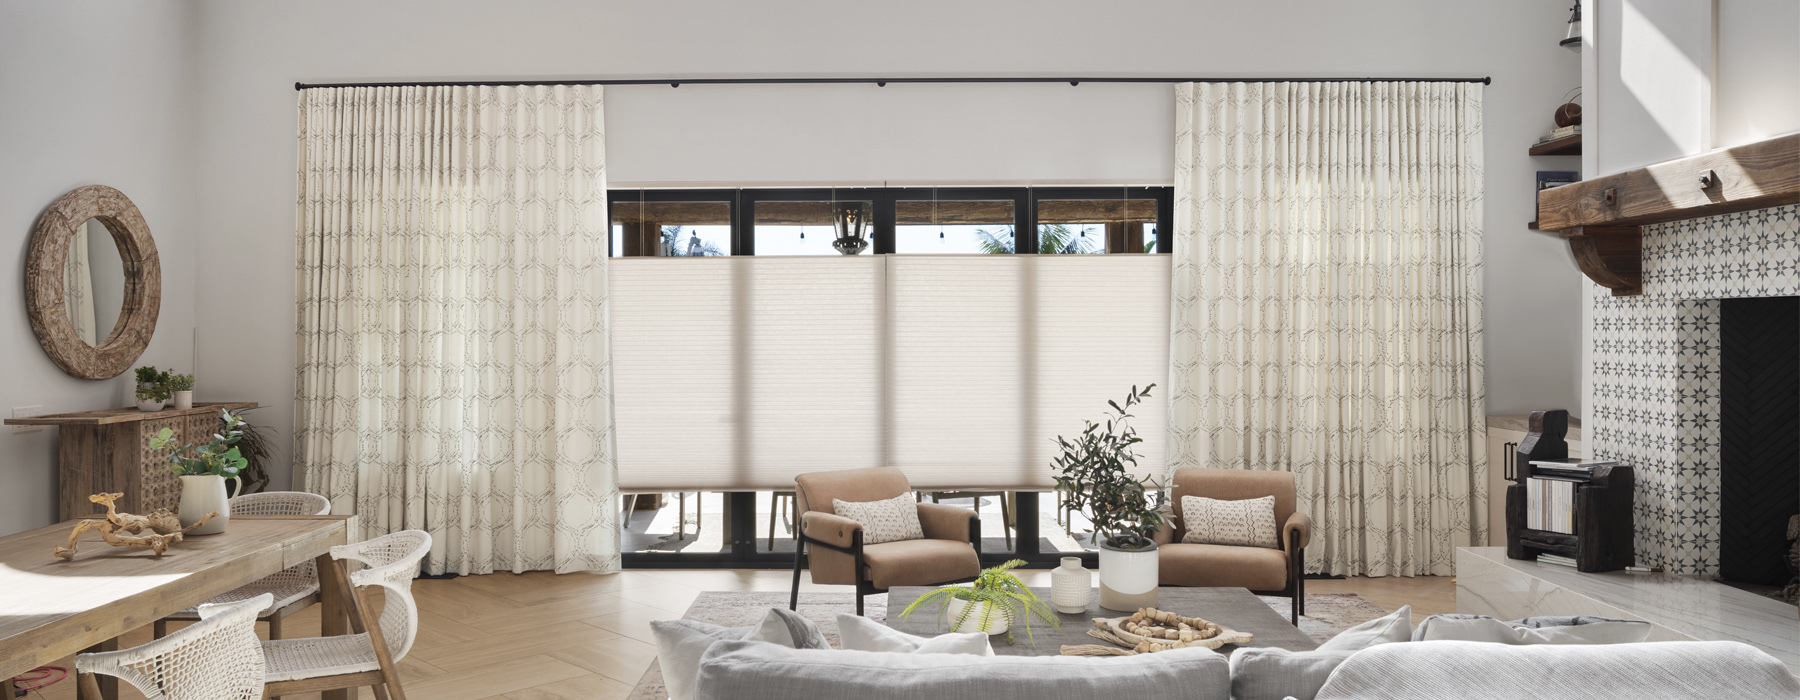 Room with Window Treatments